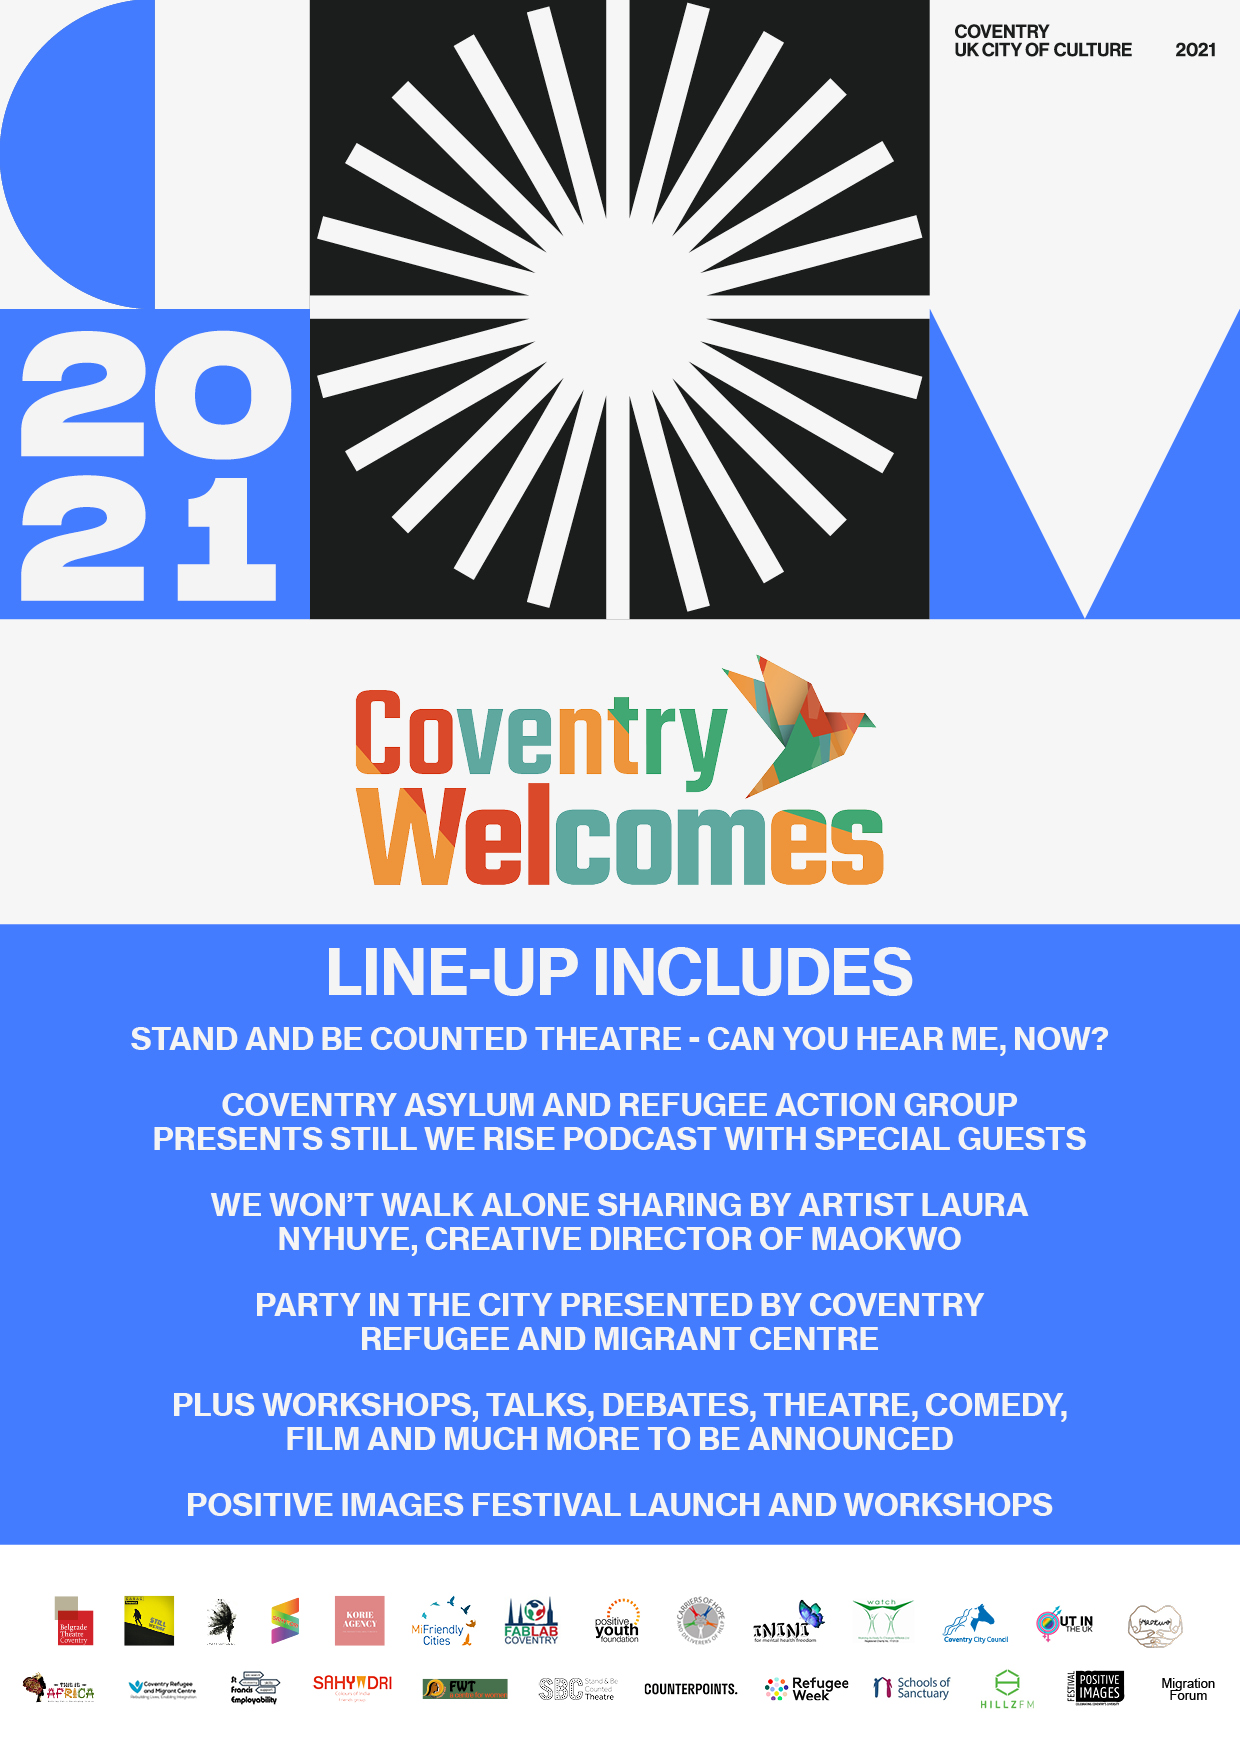 Image: Coventry Welcomes poster featuring event information, further details of all events available on this webpage's main text